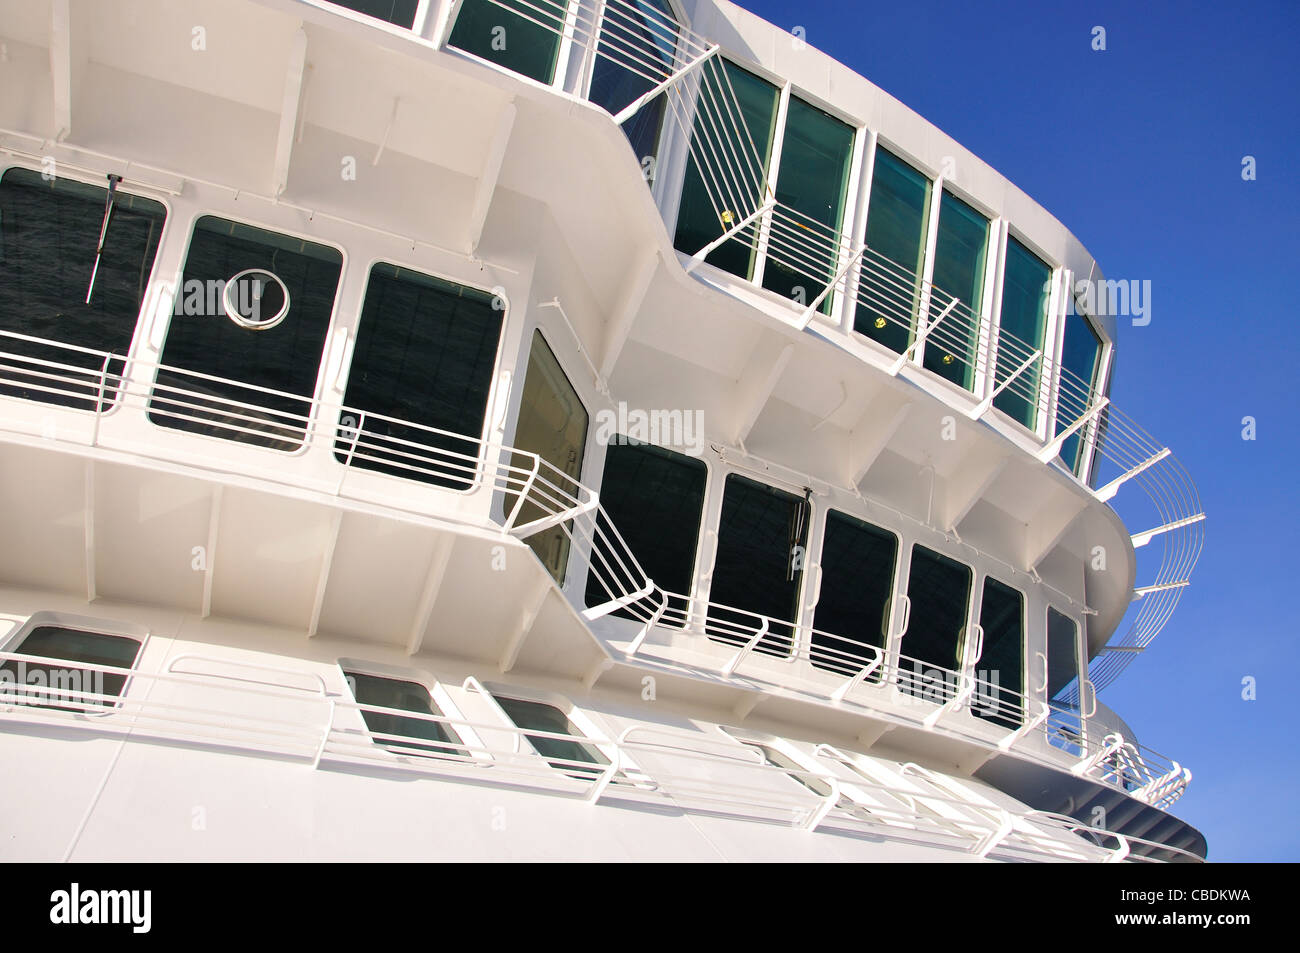 Marquee deck on Fred Olsen M.S.Balmoral cruise ship in North Sea, Northern Europe - Stock Image